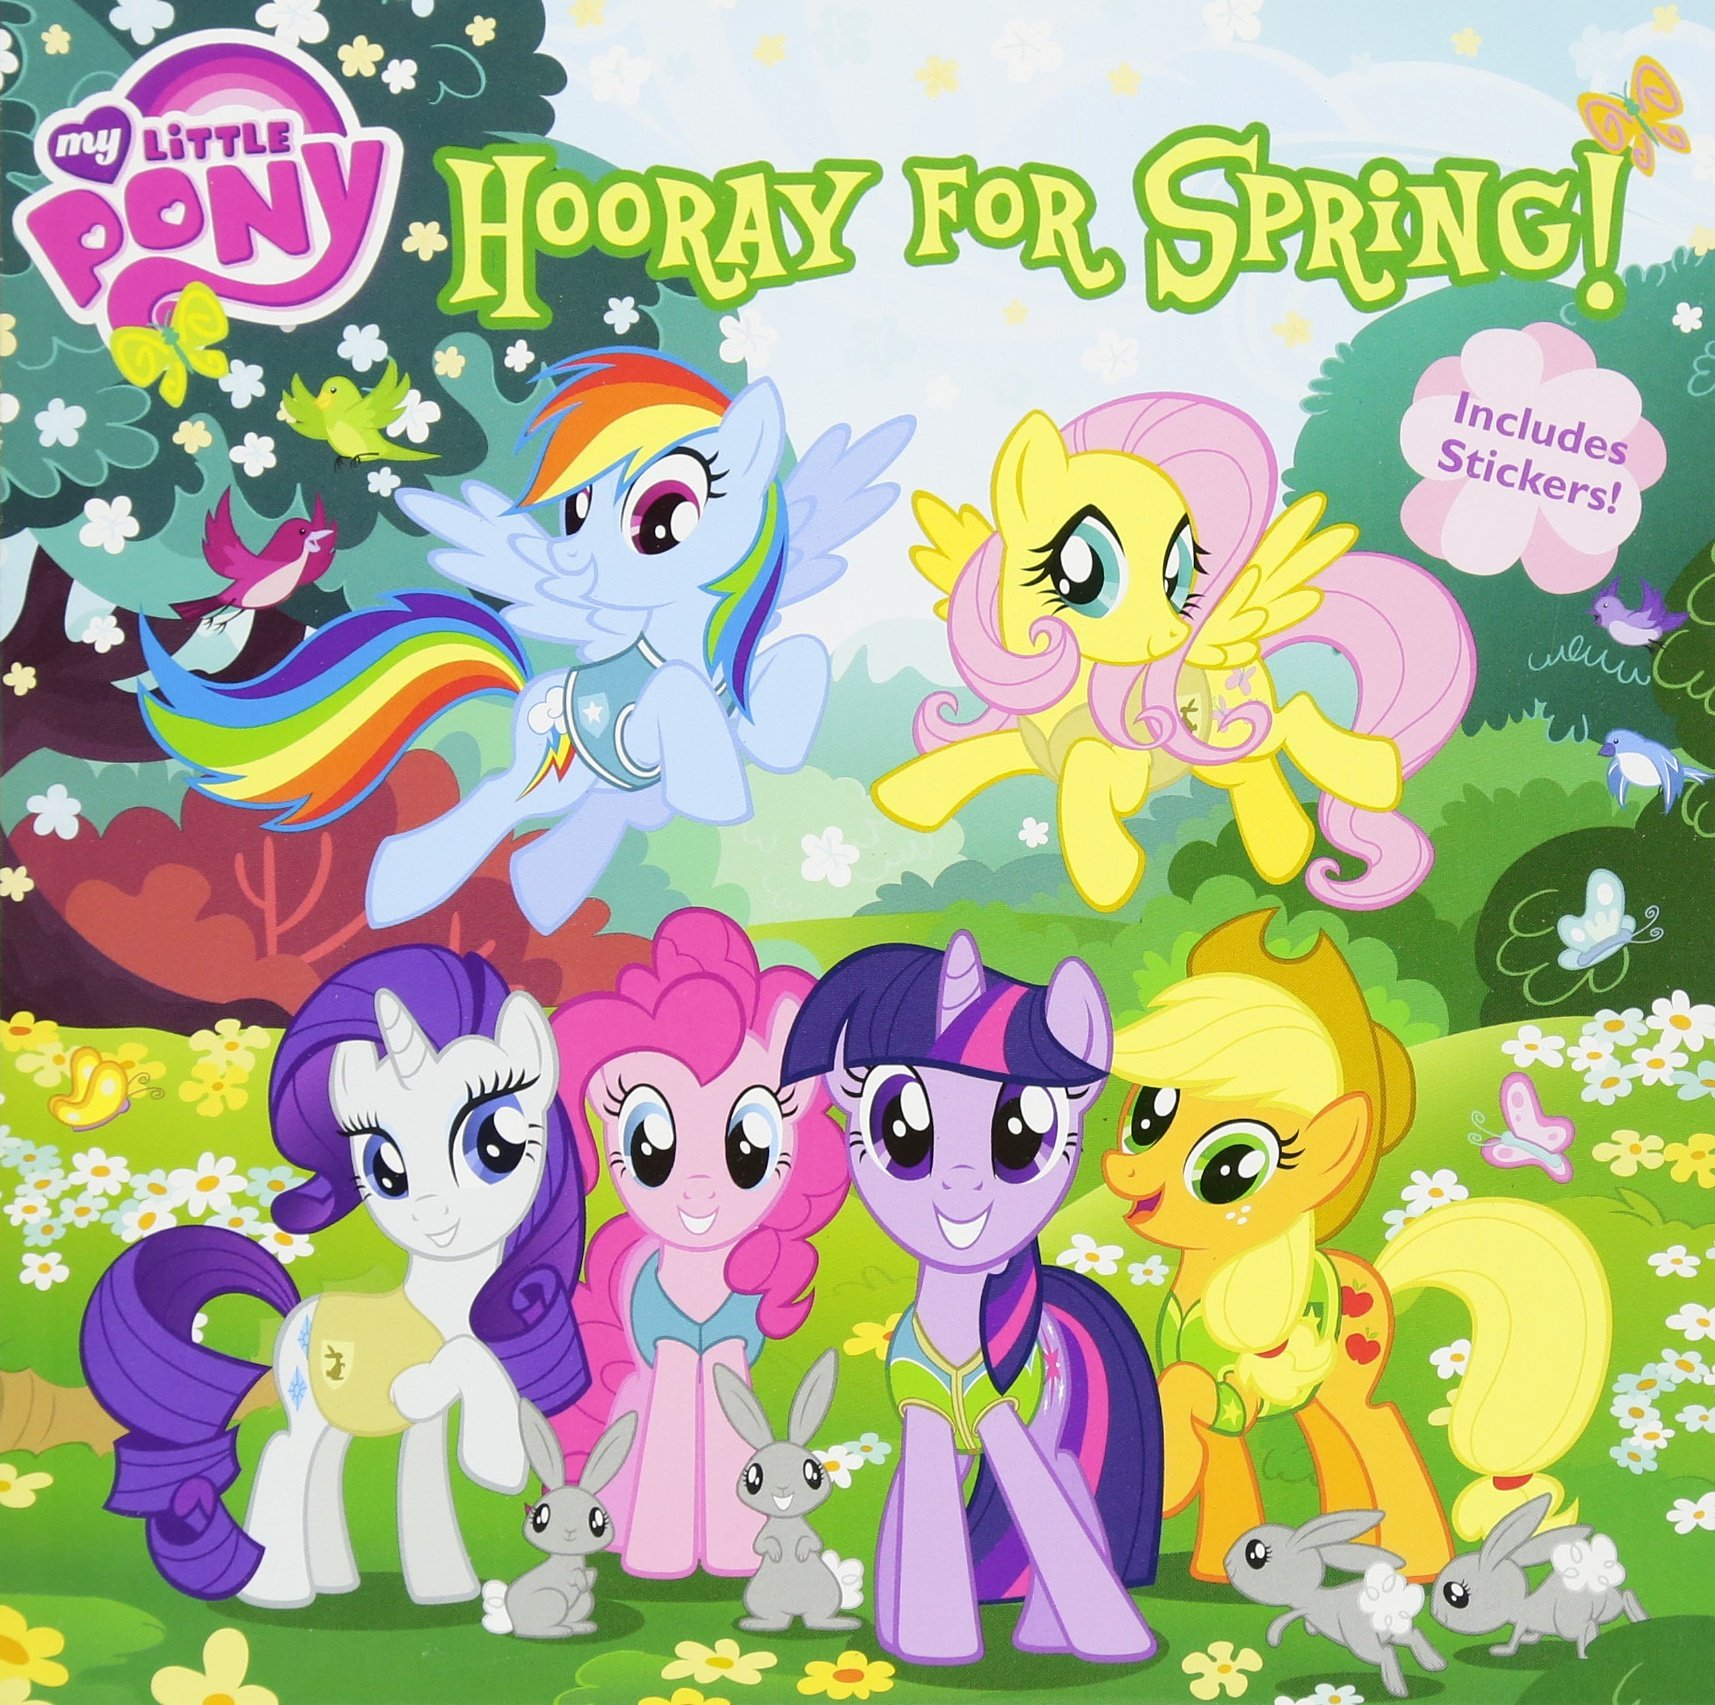 amazon my little pony hooray for spring louise alexander